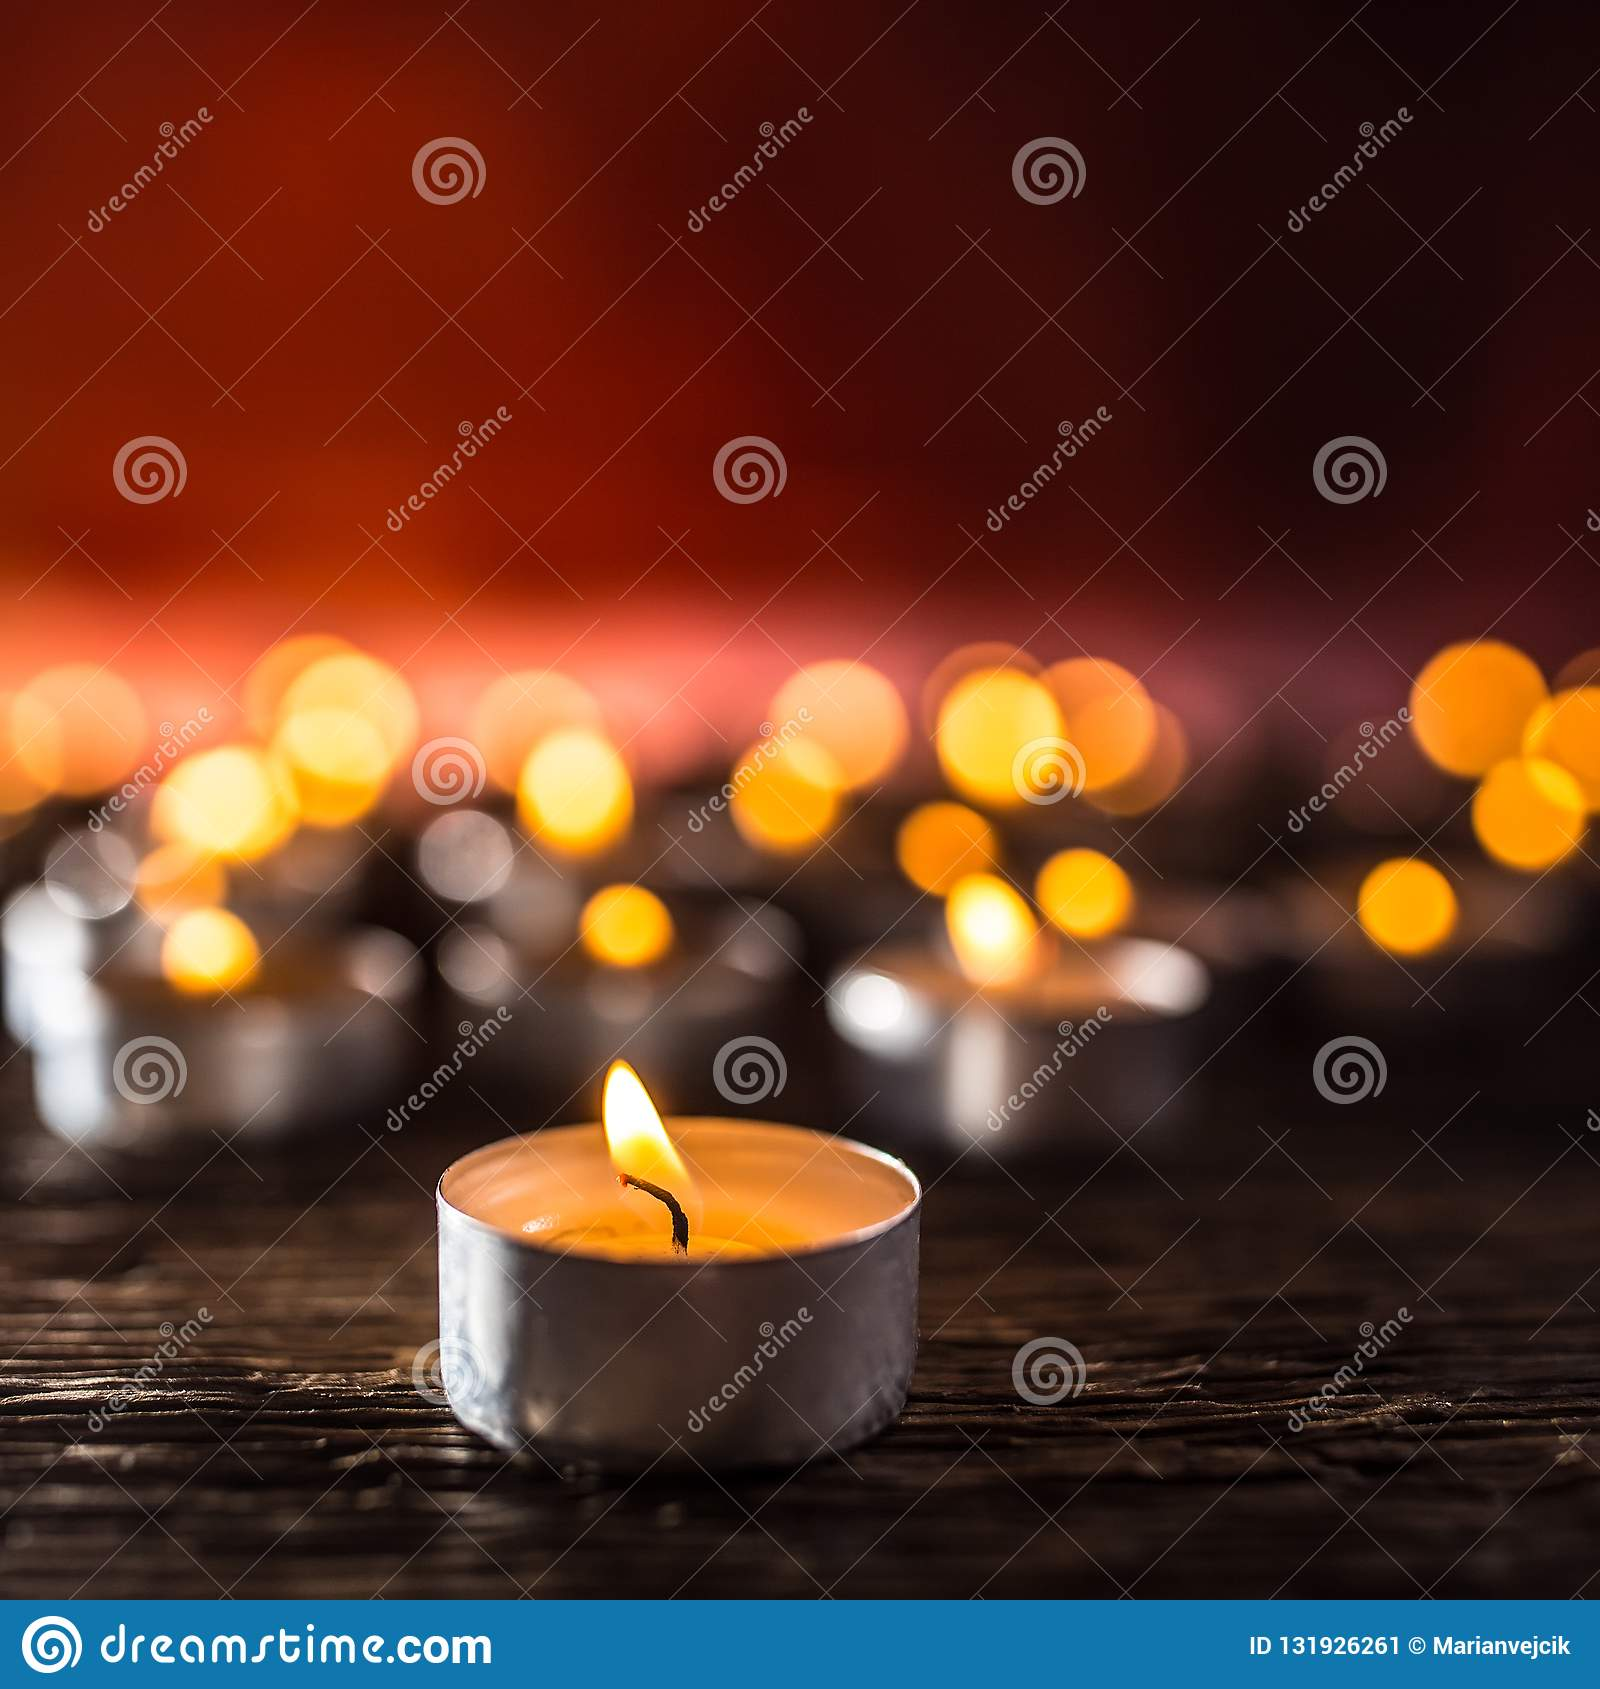 Many candles symolizing funeral religios christmas spa celebration birthday spirituality peace memorial or holiday burning